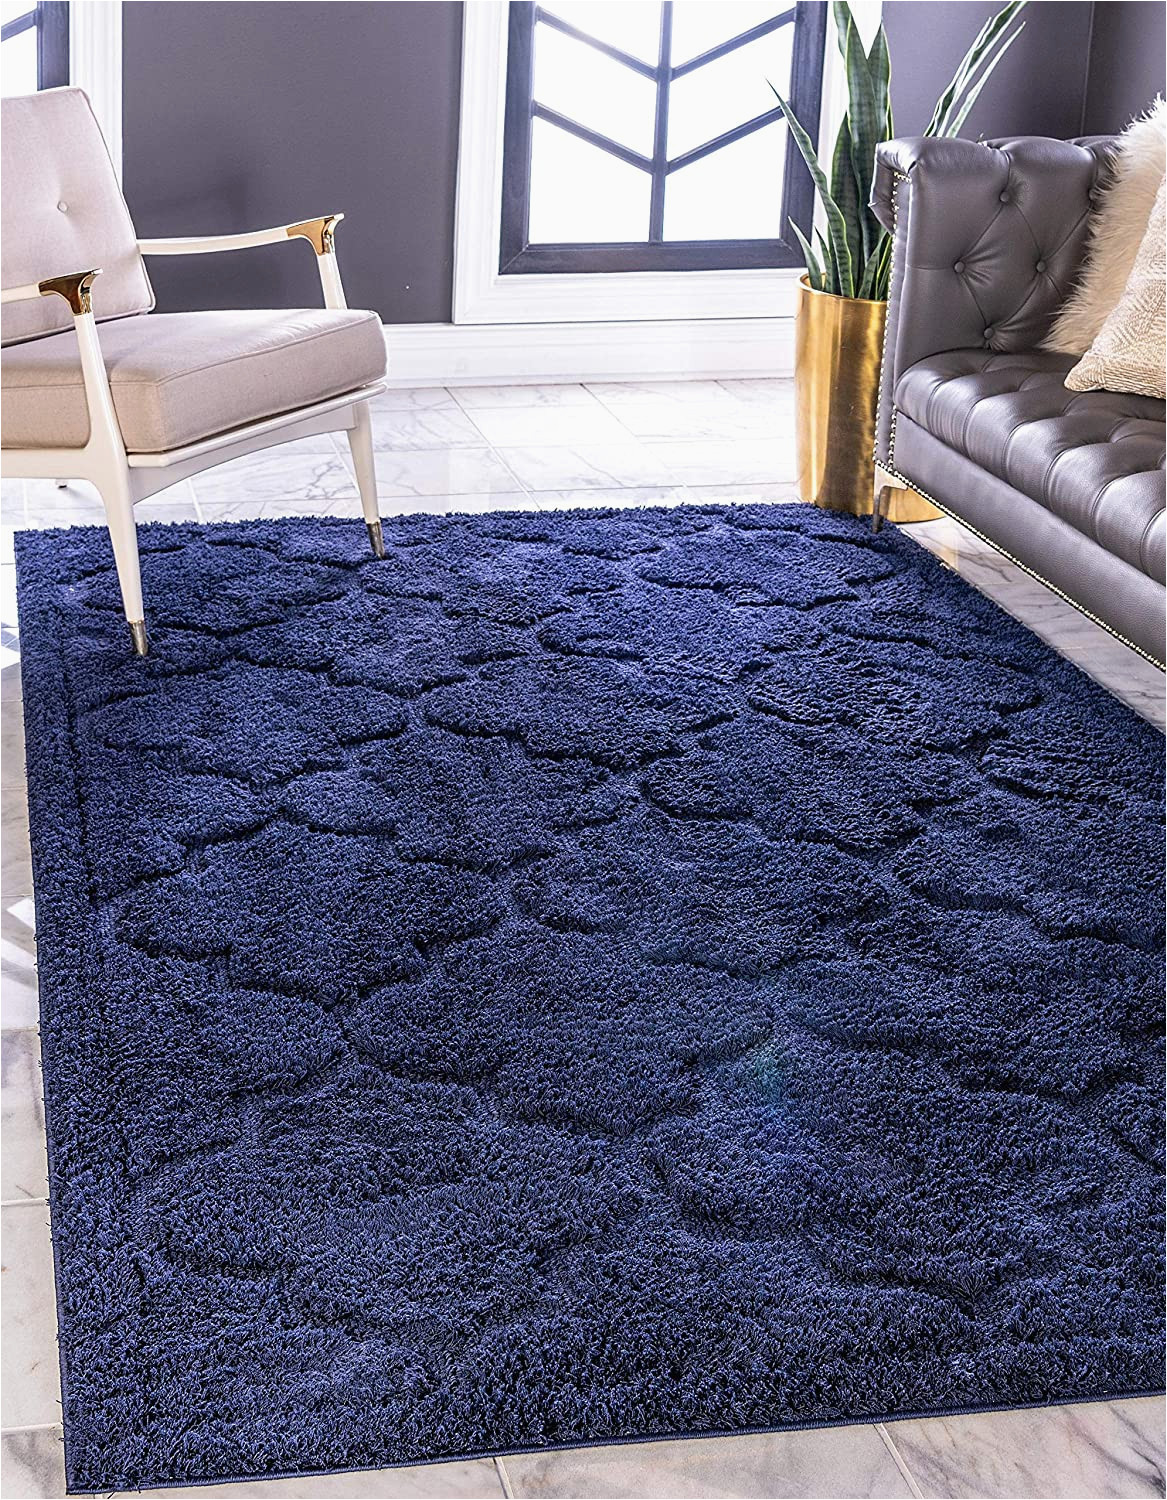 Dark Blue Fluffy Rug Unique Loom Trellis Shag Collection Plush Geometric Modern Moroccan Lattice Navy Blue area Rug 8 0 X 10 0